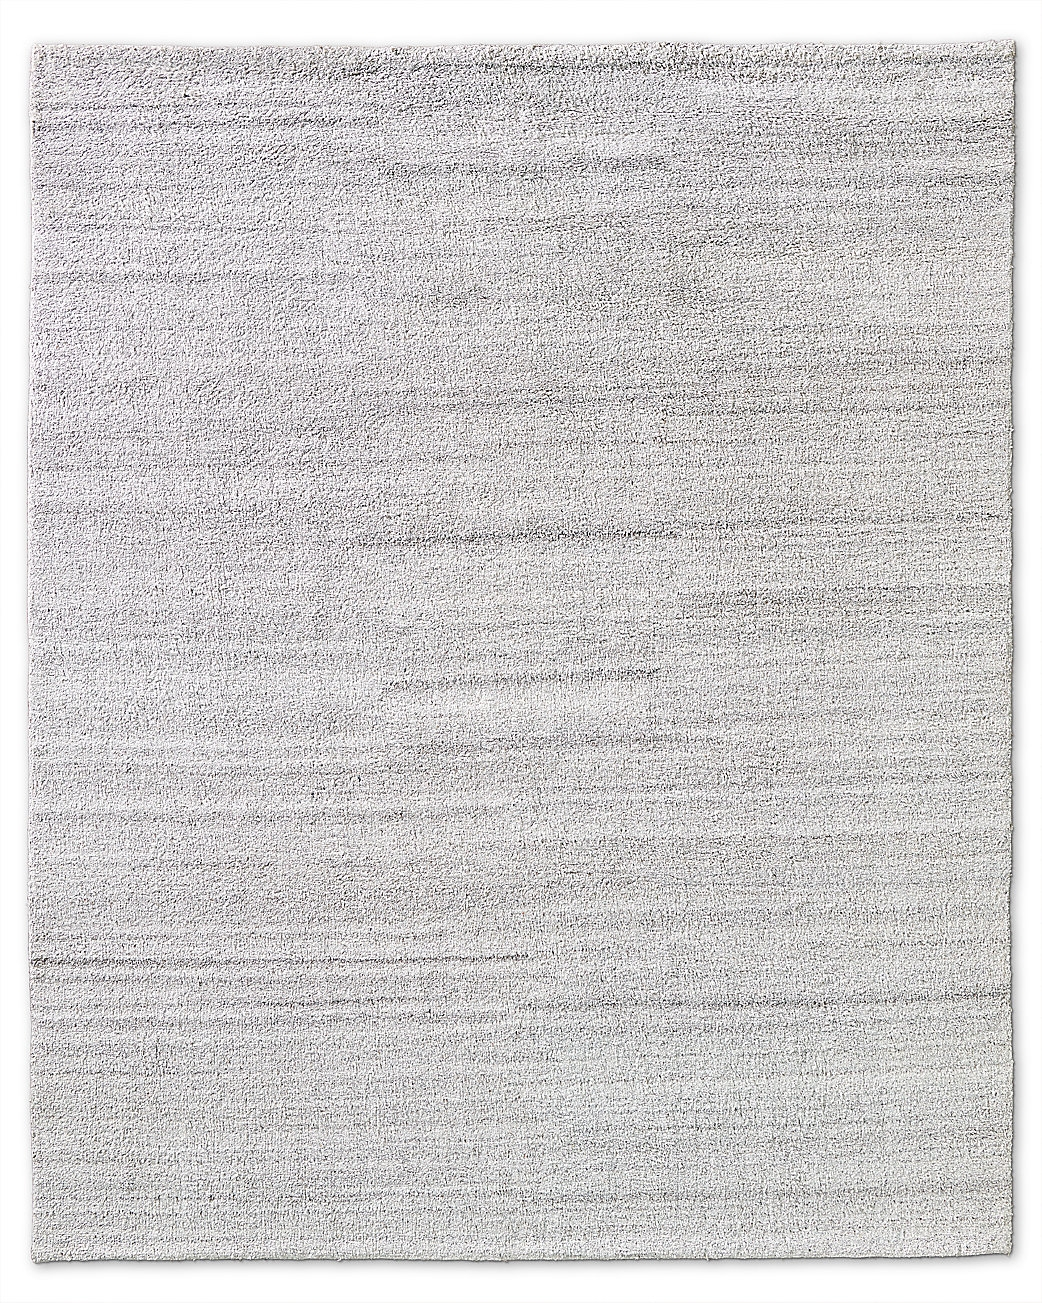 Luxe Heathered Wool Rug Silver Chesterfield Master Pinterest Pertaining To Silver Rugs (View 5 of 15)